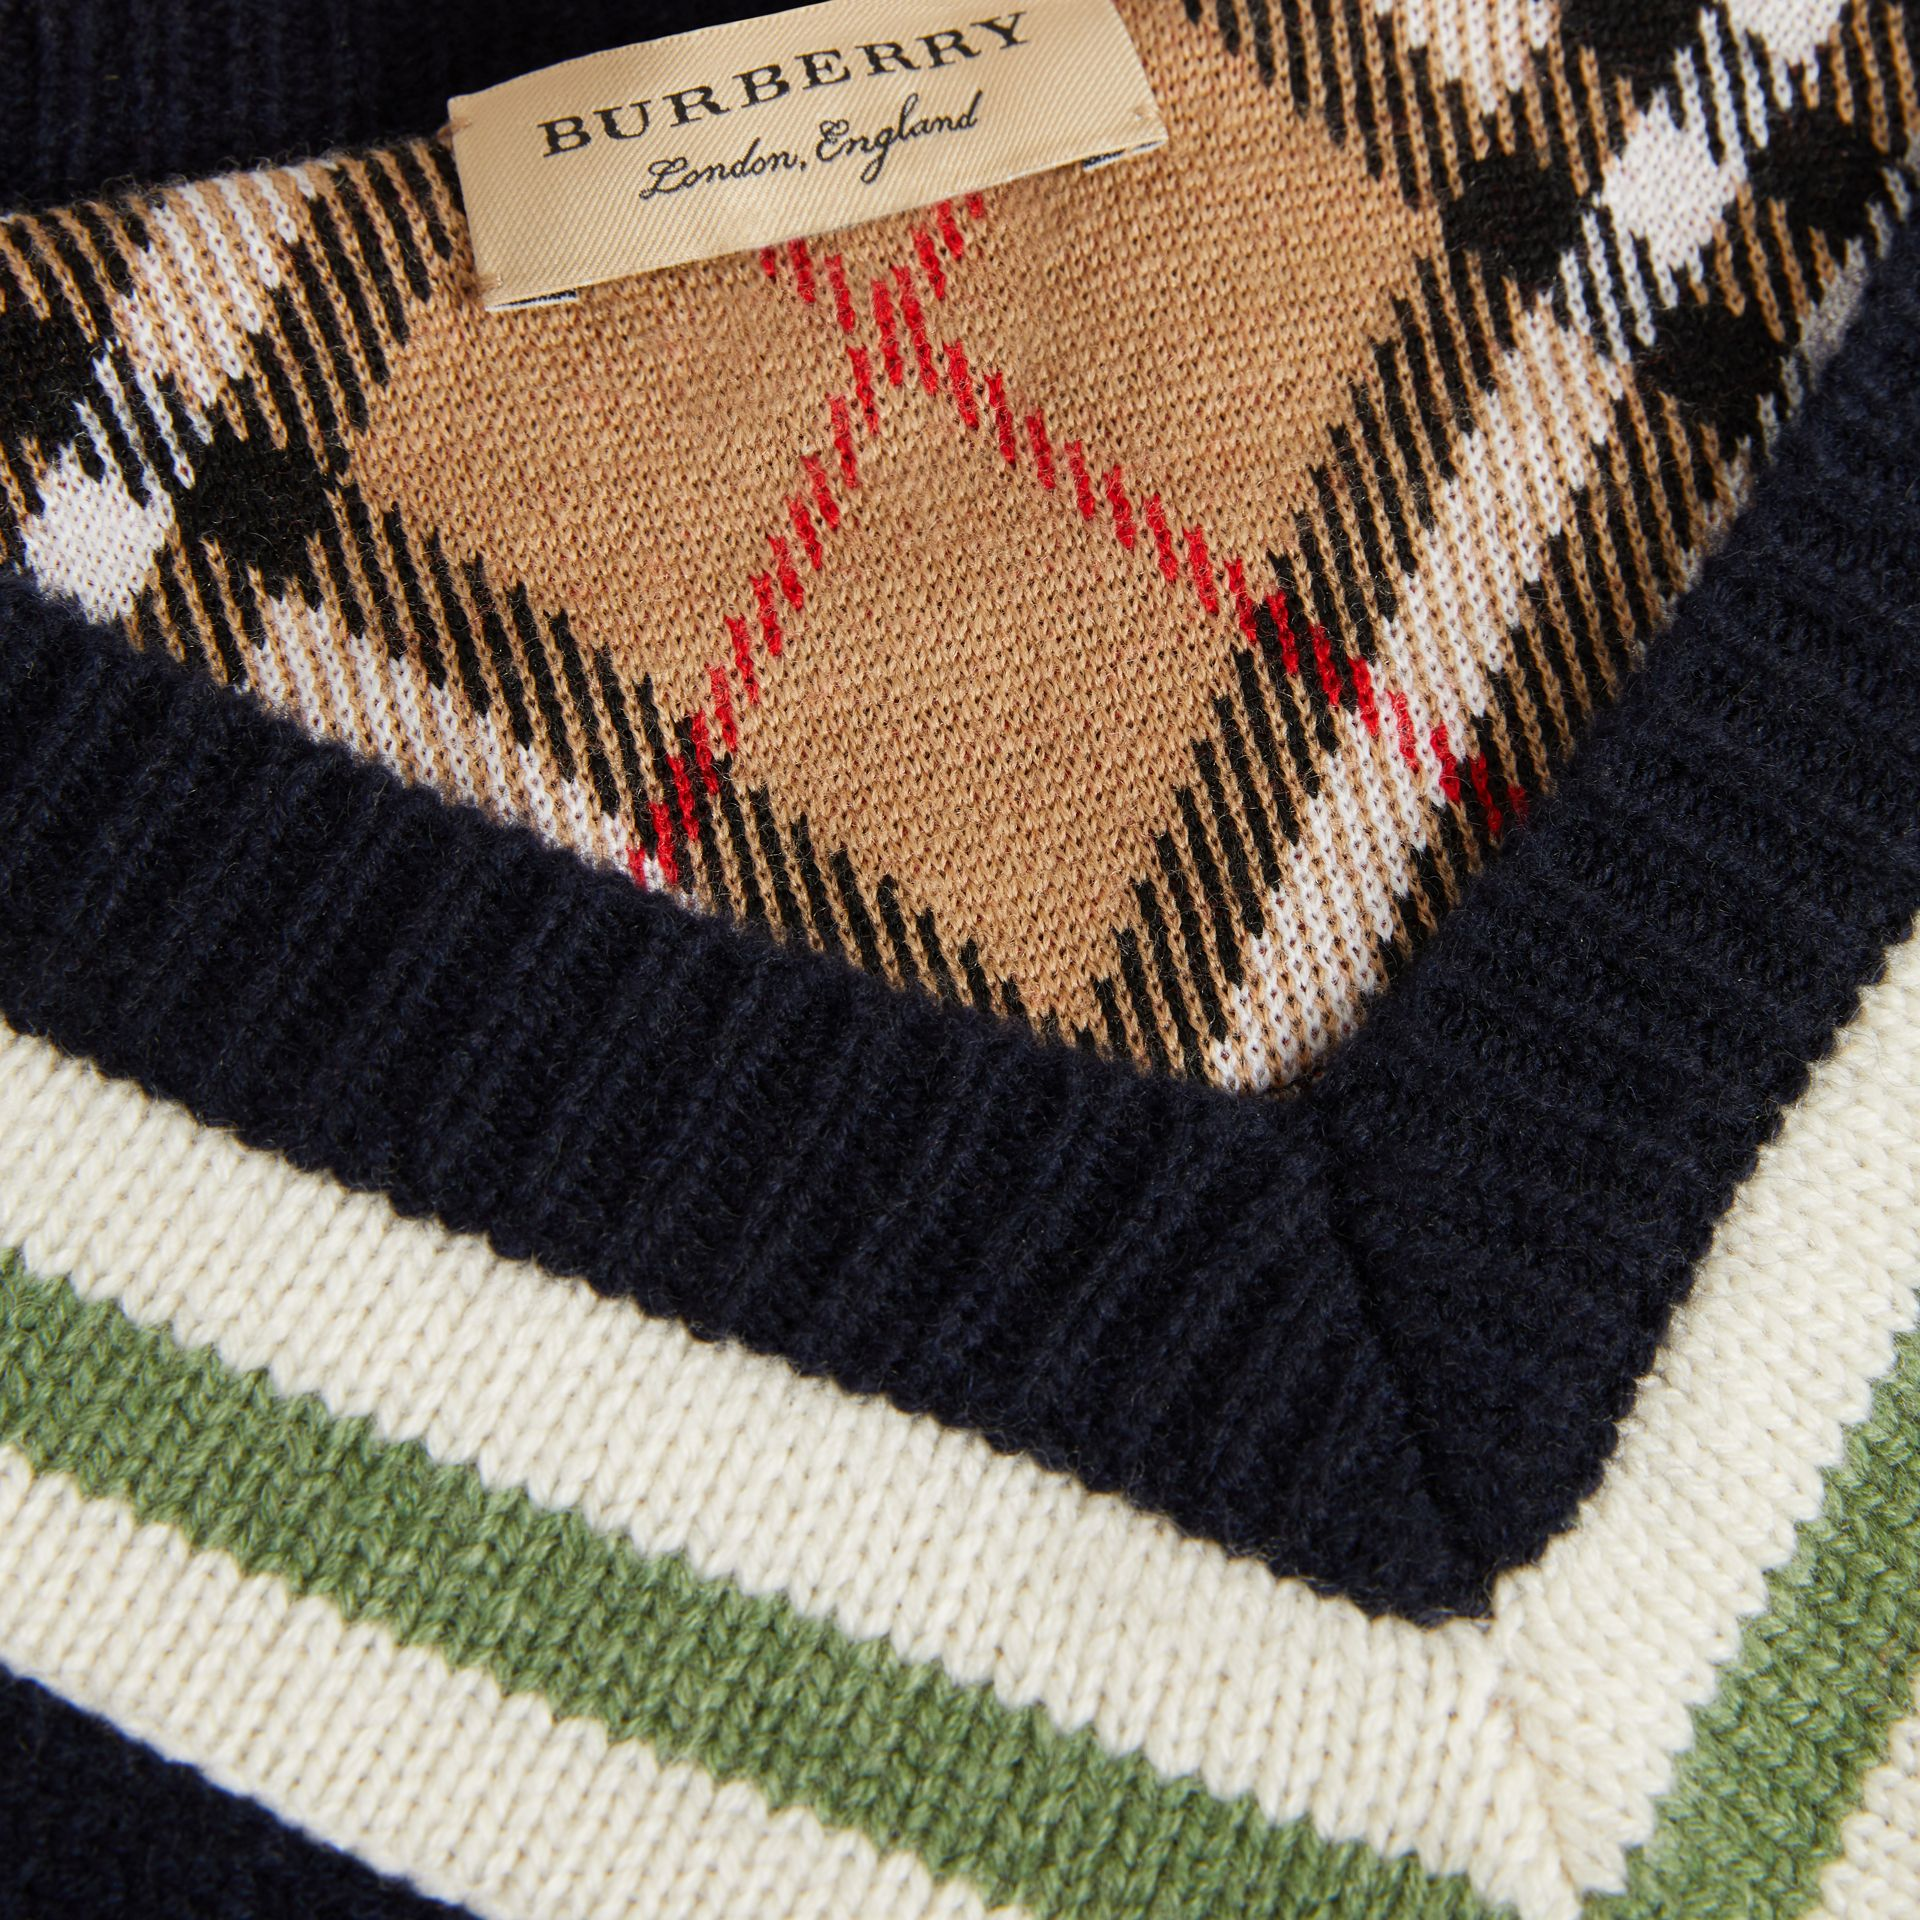 Embroidered Crest Wool Cashmere Sweater in Navy - Women | Burberry United Kingdom - gallery image 6